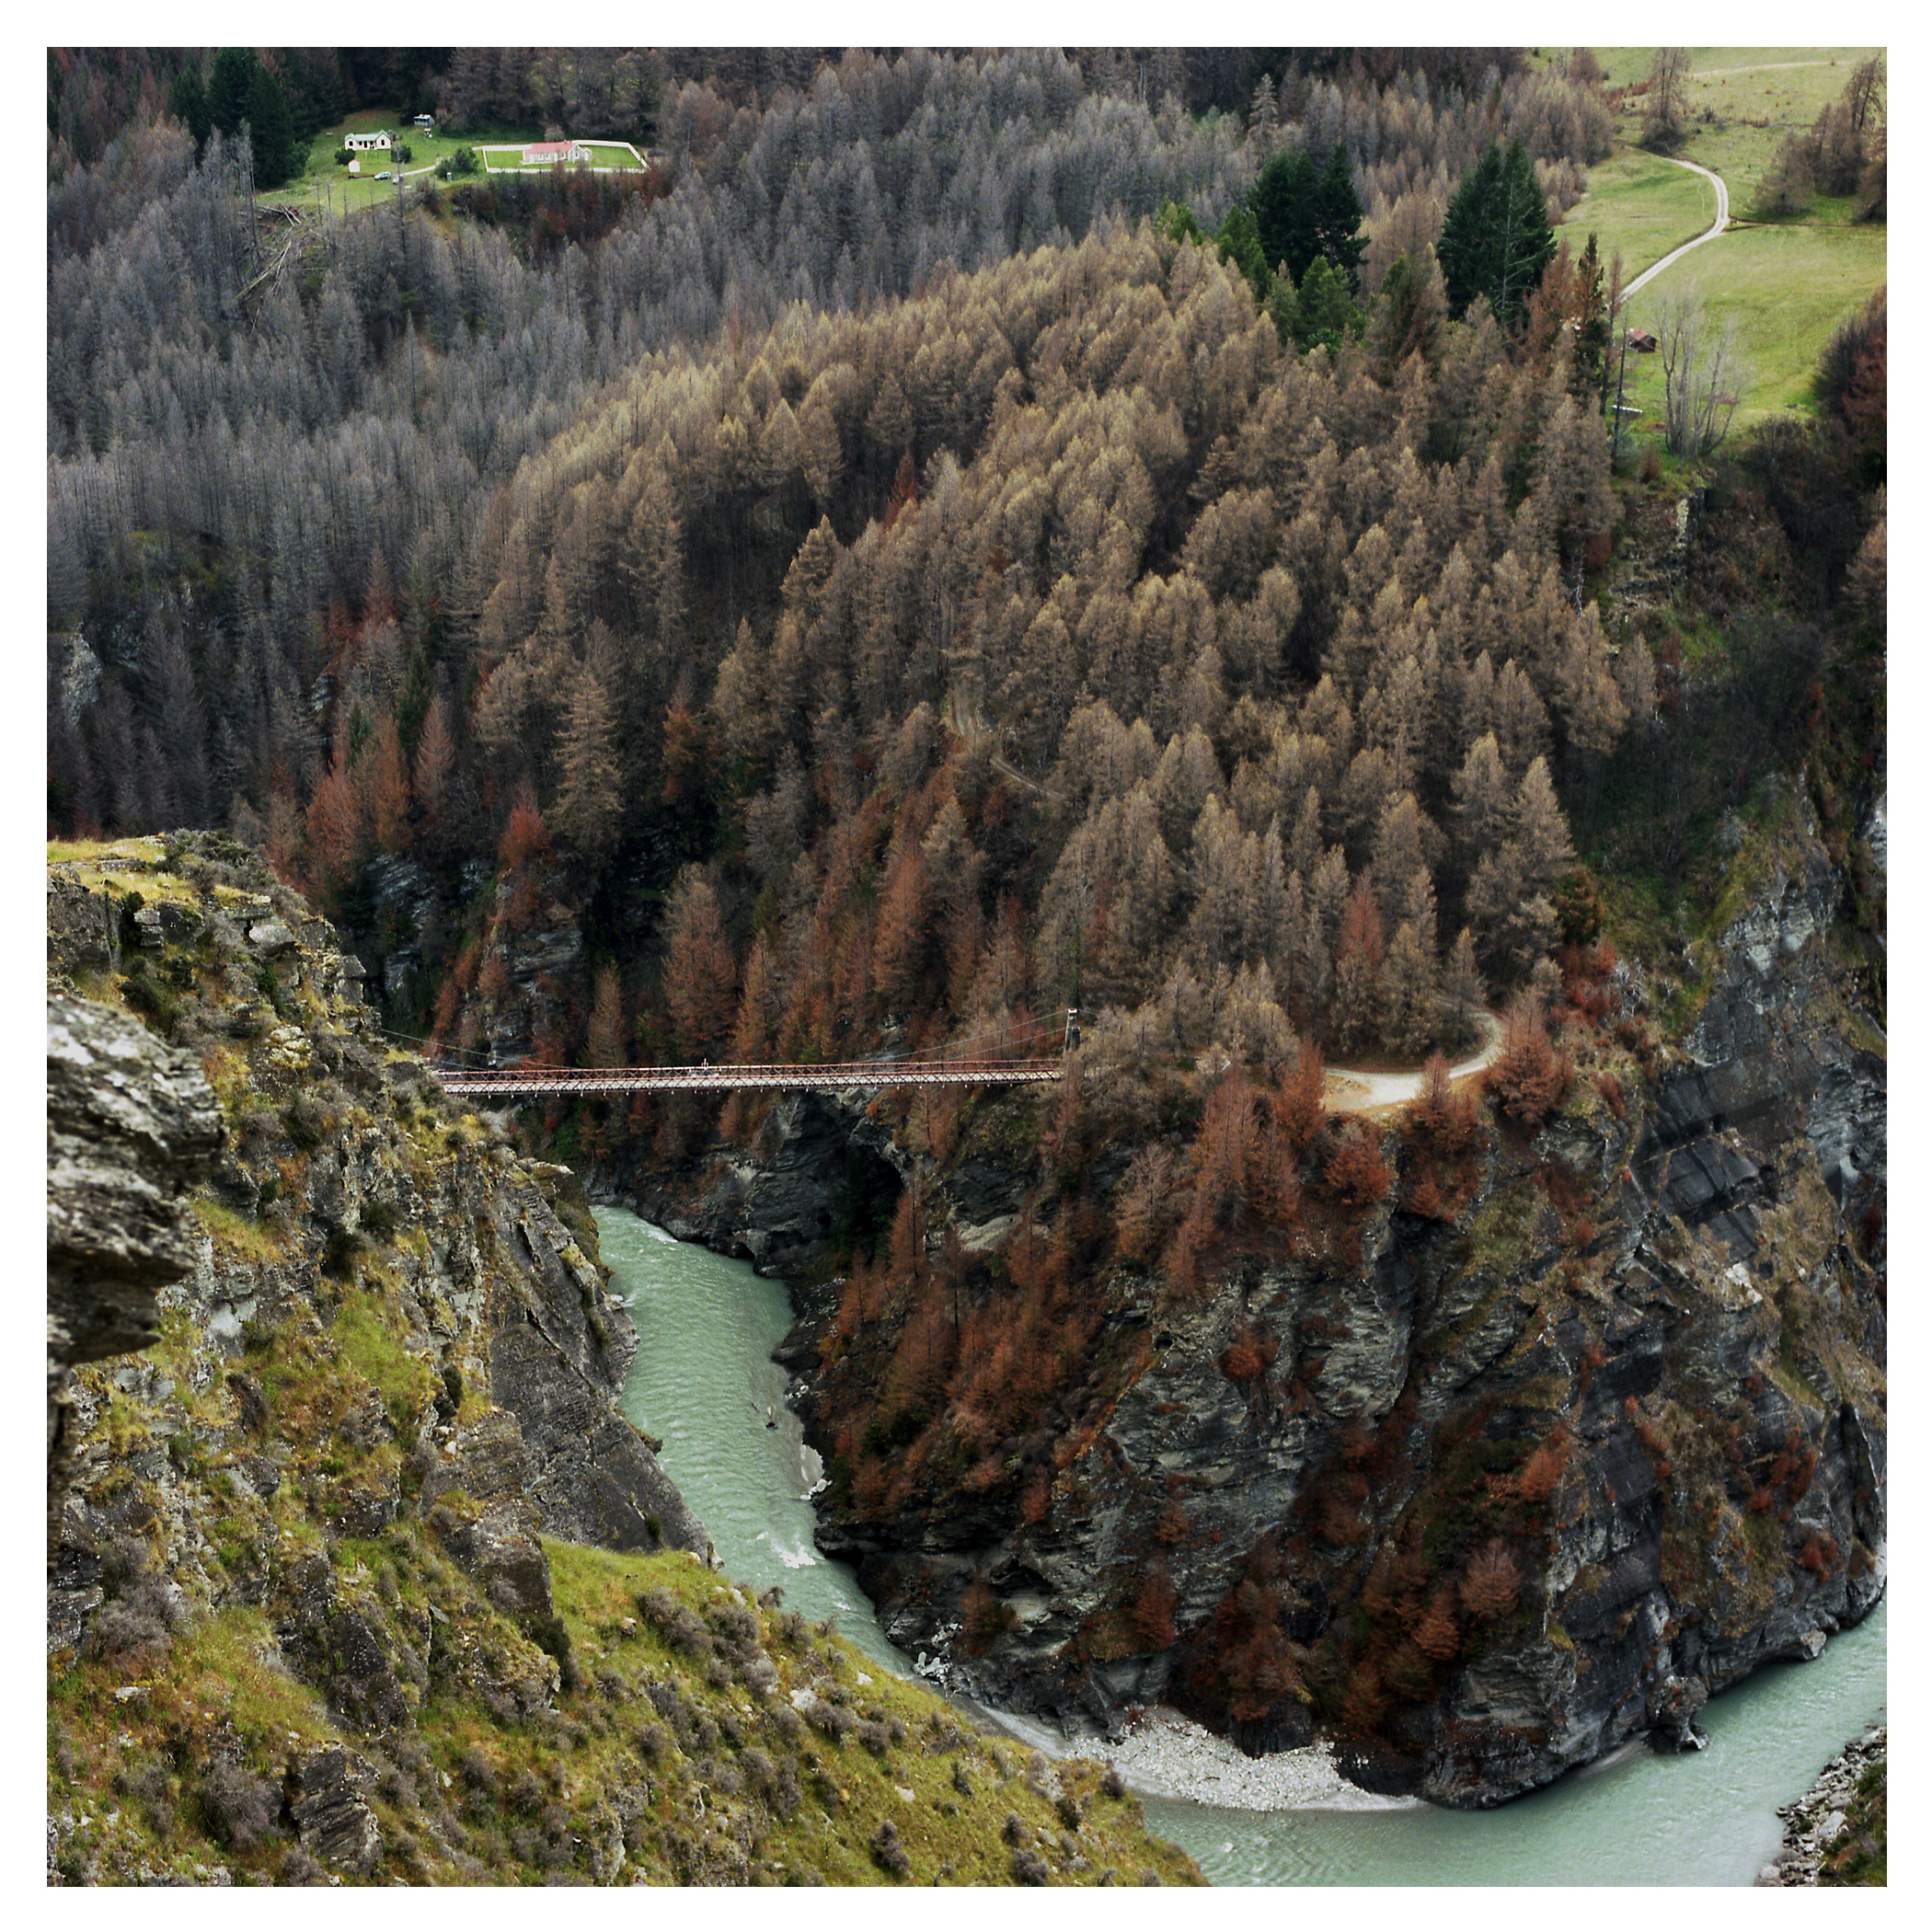 The sport of Bungee Jumping was invented in New Zealand by A.J. Hackett.  Contrary to popular belief, this bridge was the first ever bridge to be bungy jumped off.